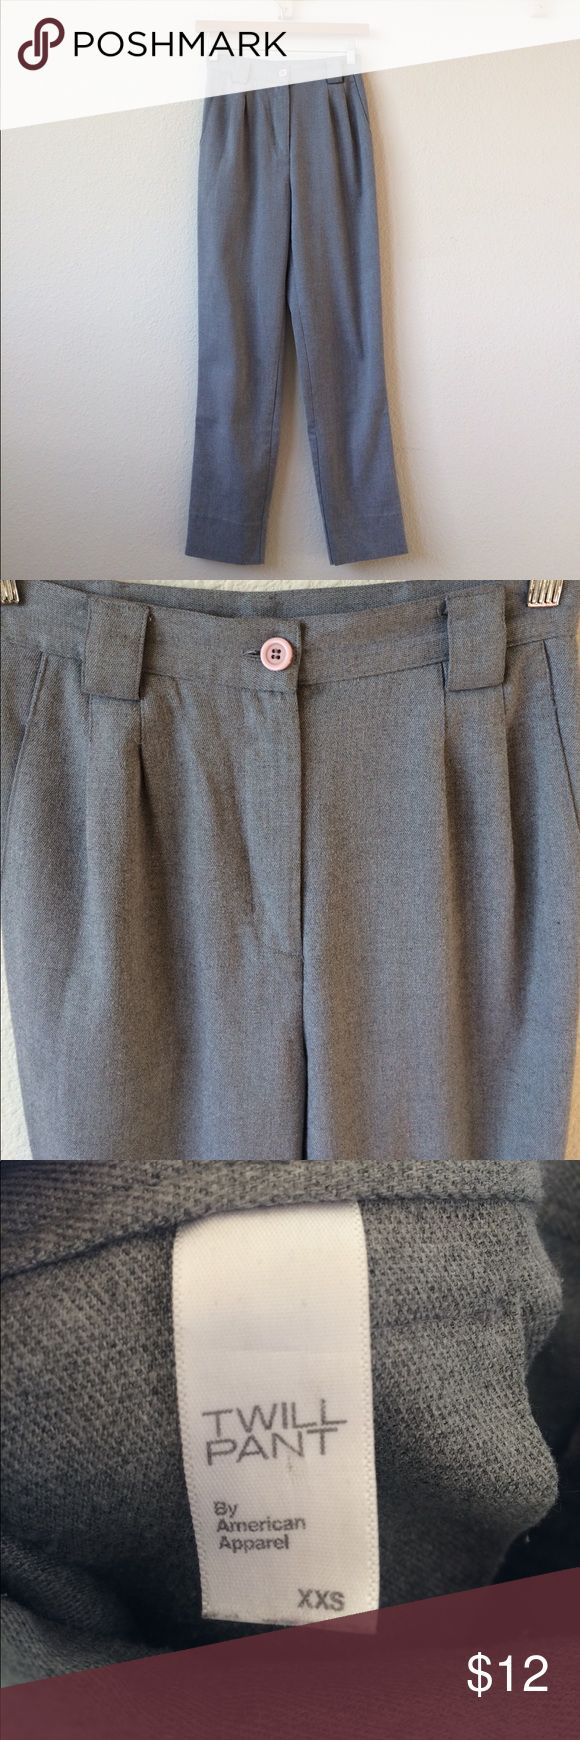 American Apparel Twill high-waisted Pant These high waisted Twill pants are a dream! Have pockets and look cute cuffed up once but hit about ankle length in me (I'm 5'4) great condition! American Apparel Pants Trousers